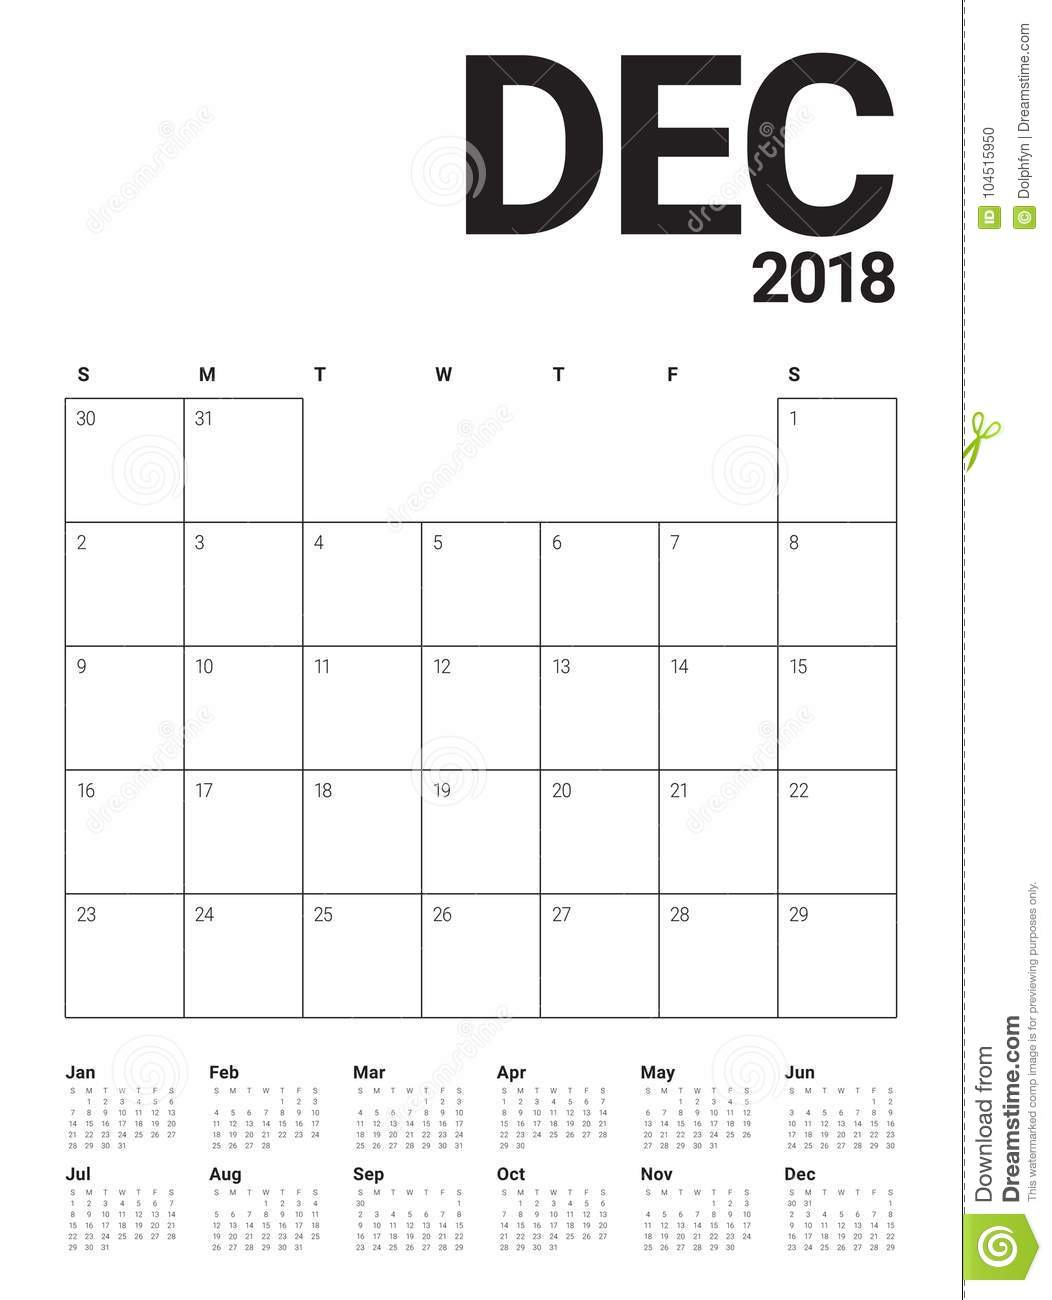 December 2018 planner calendar vector illustration